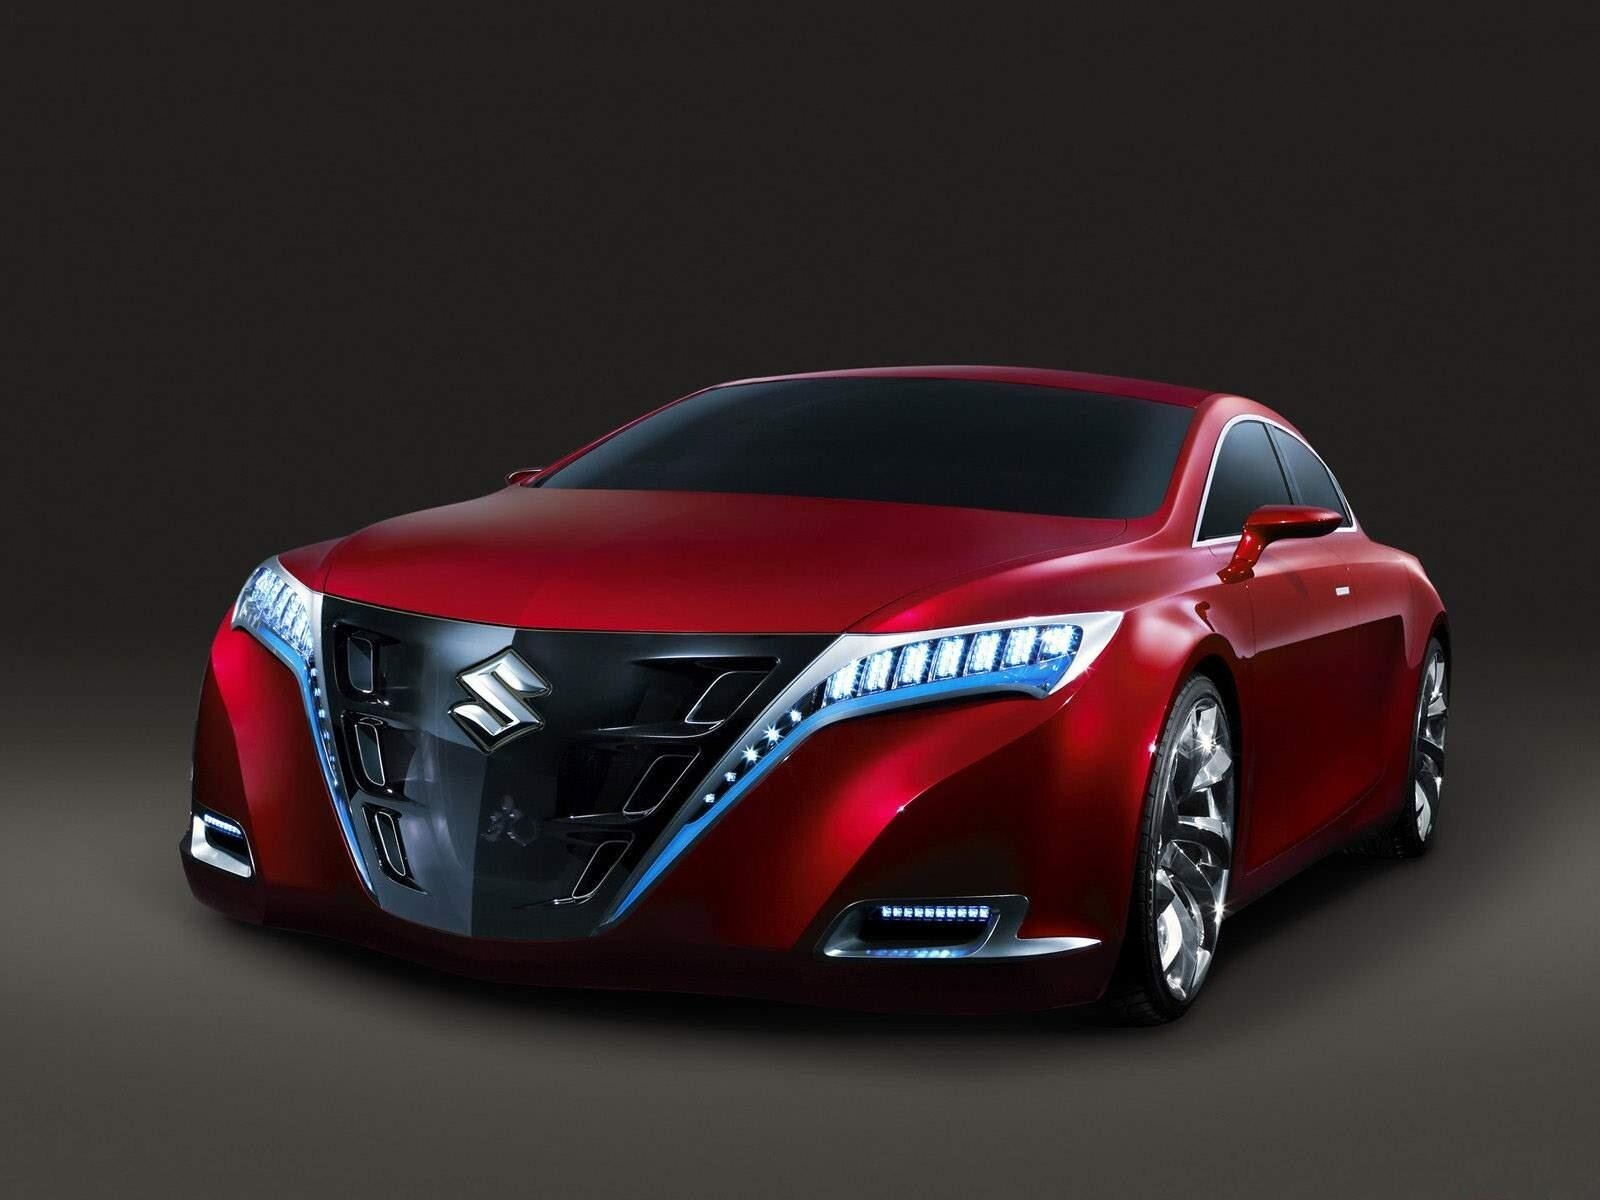 Red Suzuki Kizashi 2 Concept Car Hd Wallpapers